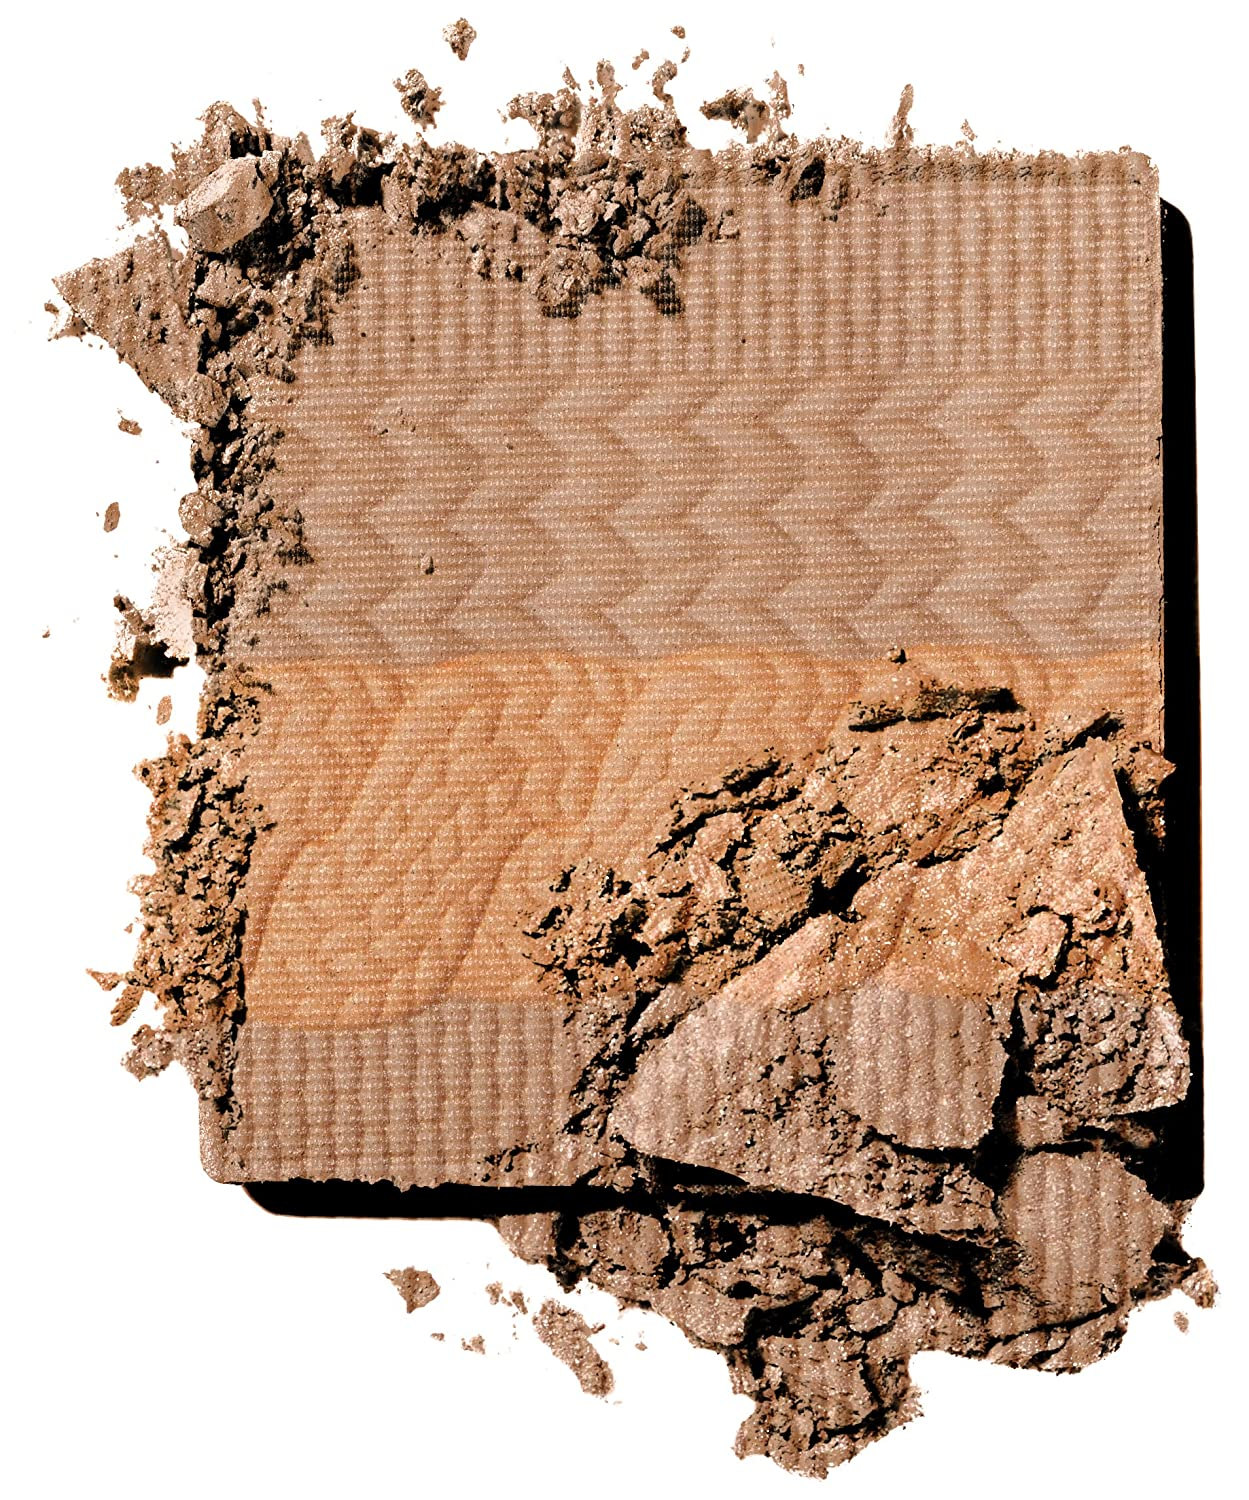 http://www.amazon.com/Physicians-Formula-Cashmere-Ultra-Smoothing-Bronzer/dp/B004HYOQEQ